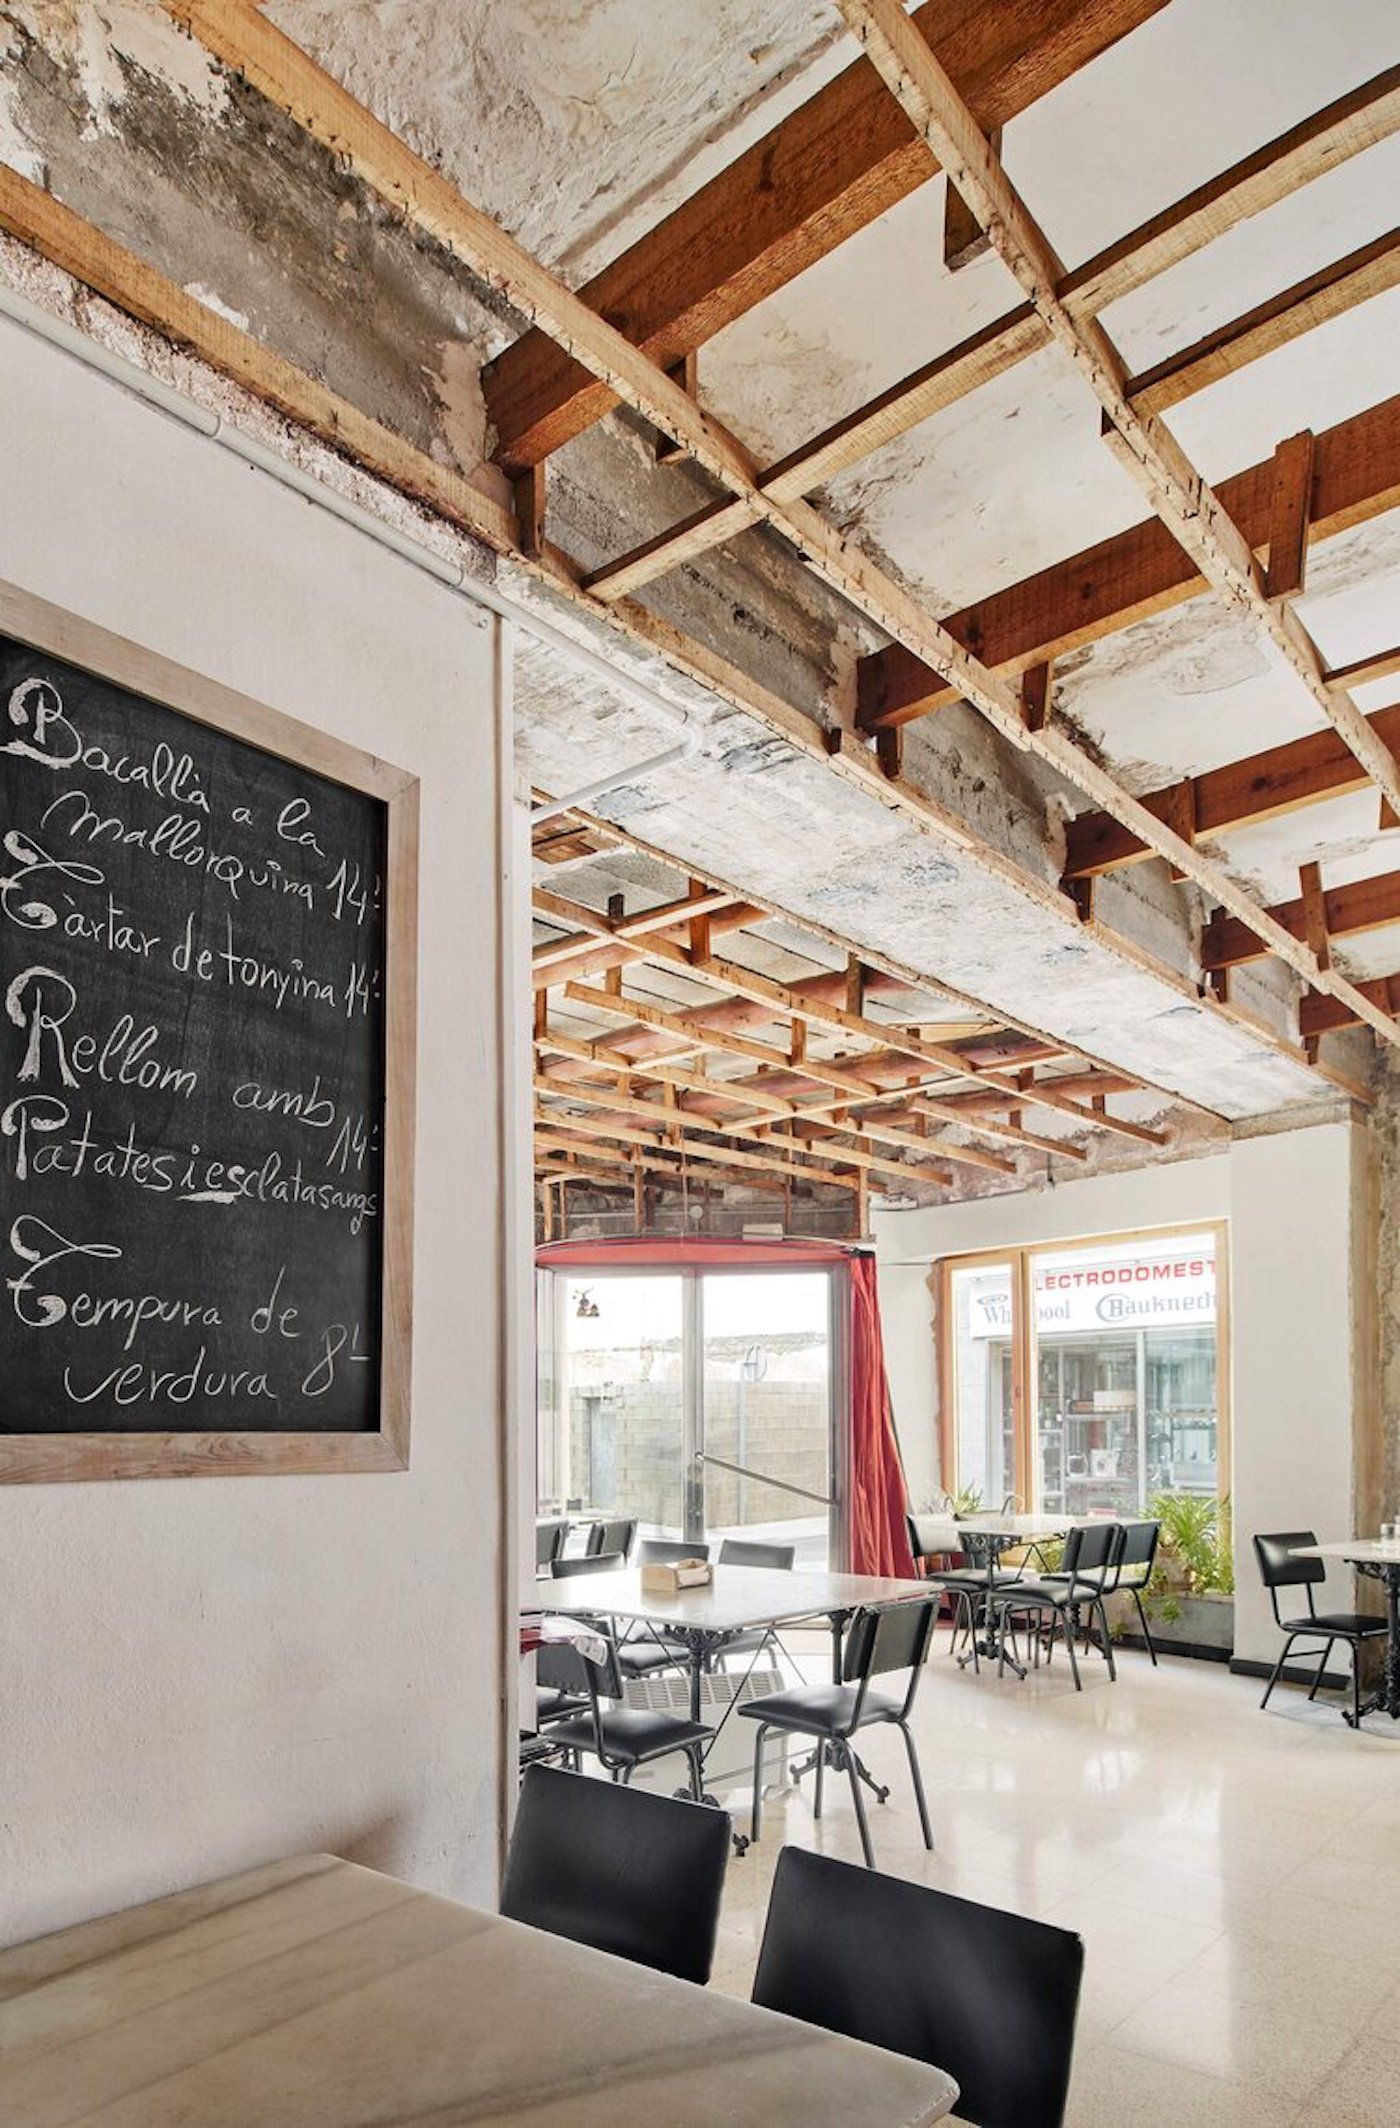 Exposed timber ceiling and concrete floors in cafe